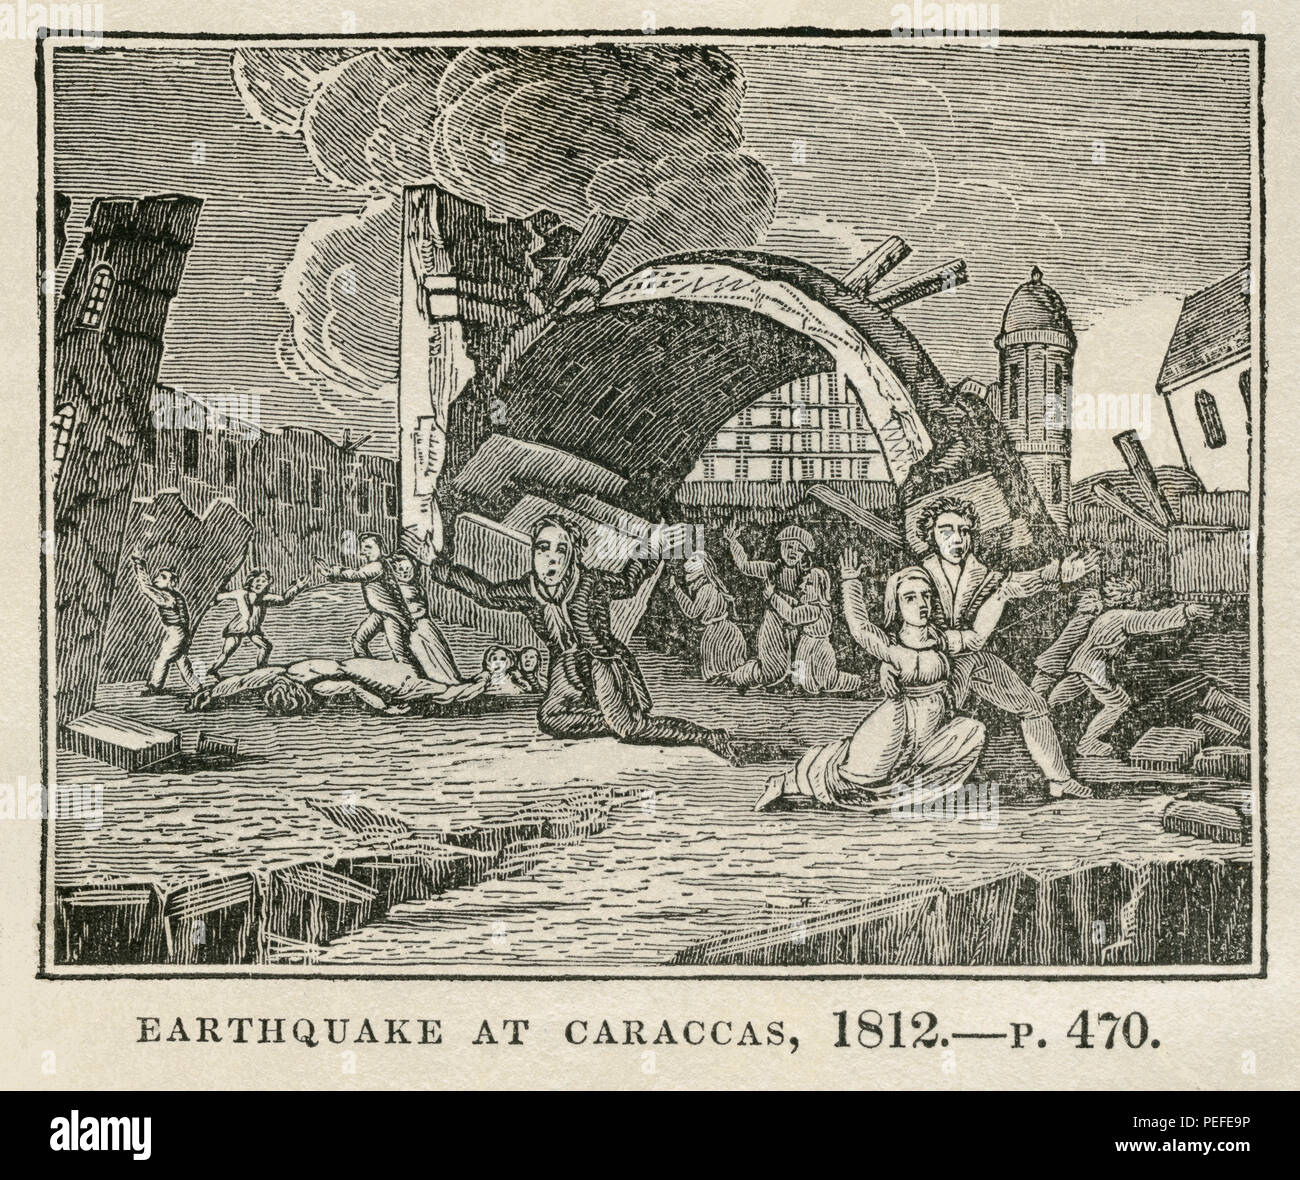 Earthquake at Caracas, 1812,  Illustration from the Book, Historical Cabinet, L.H. Young Publisher, New Haven, 1834 - Stock Image